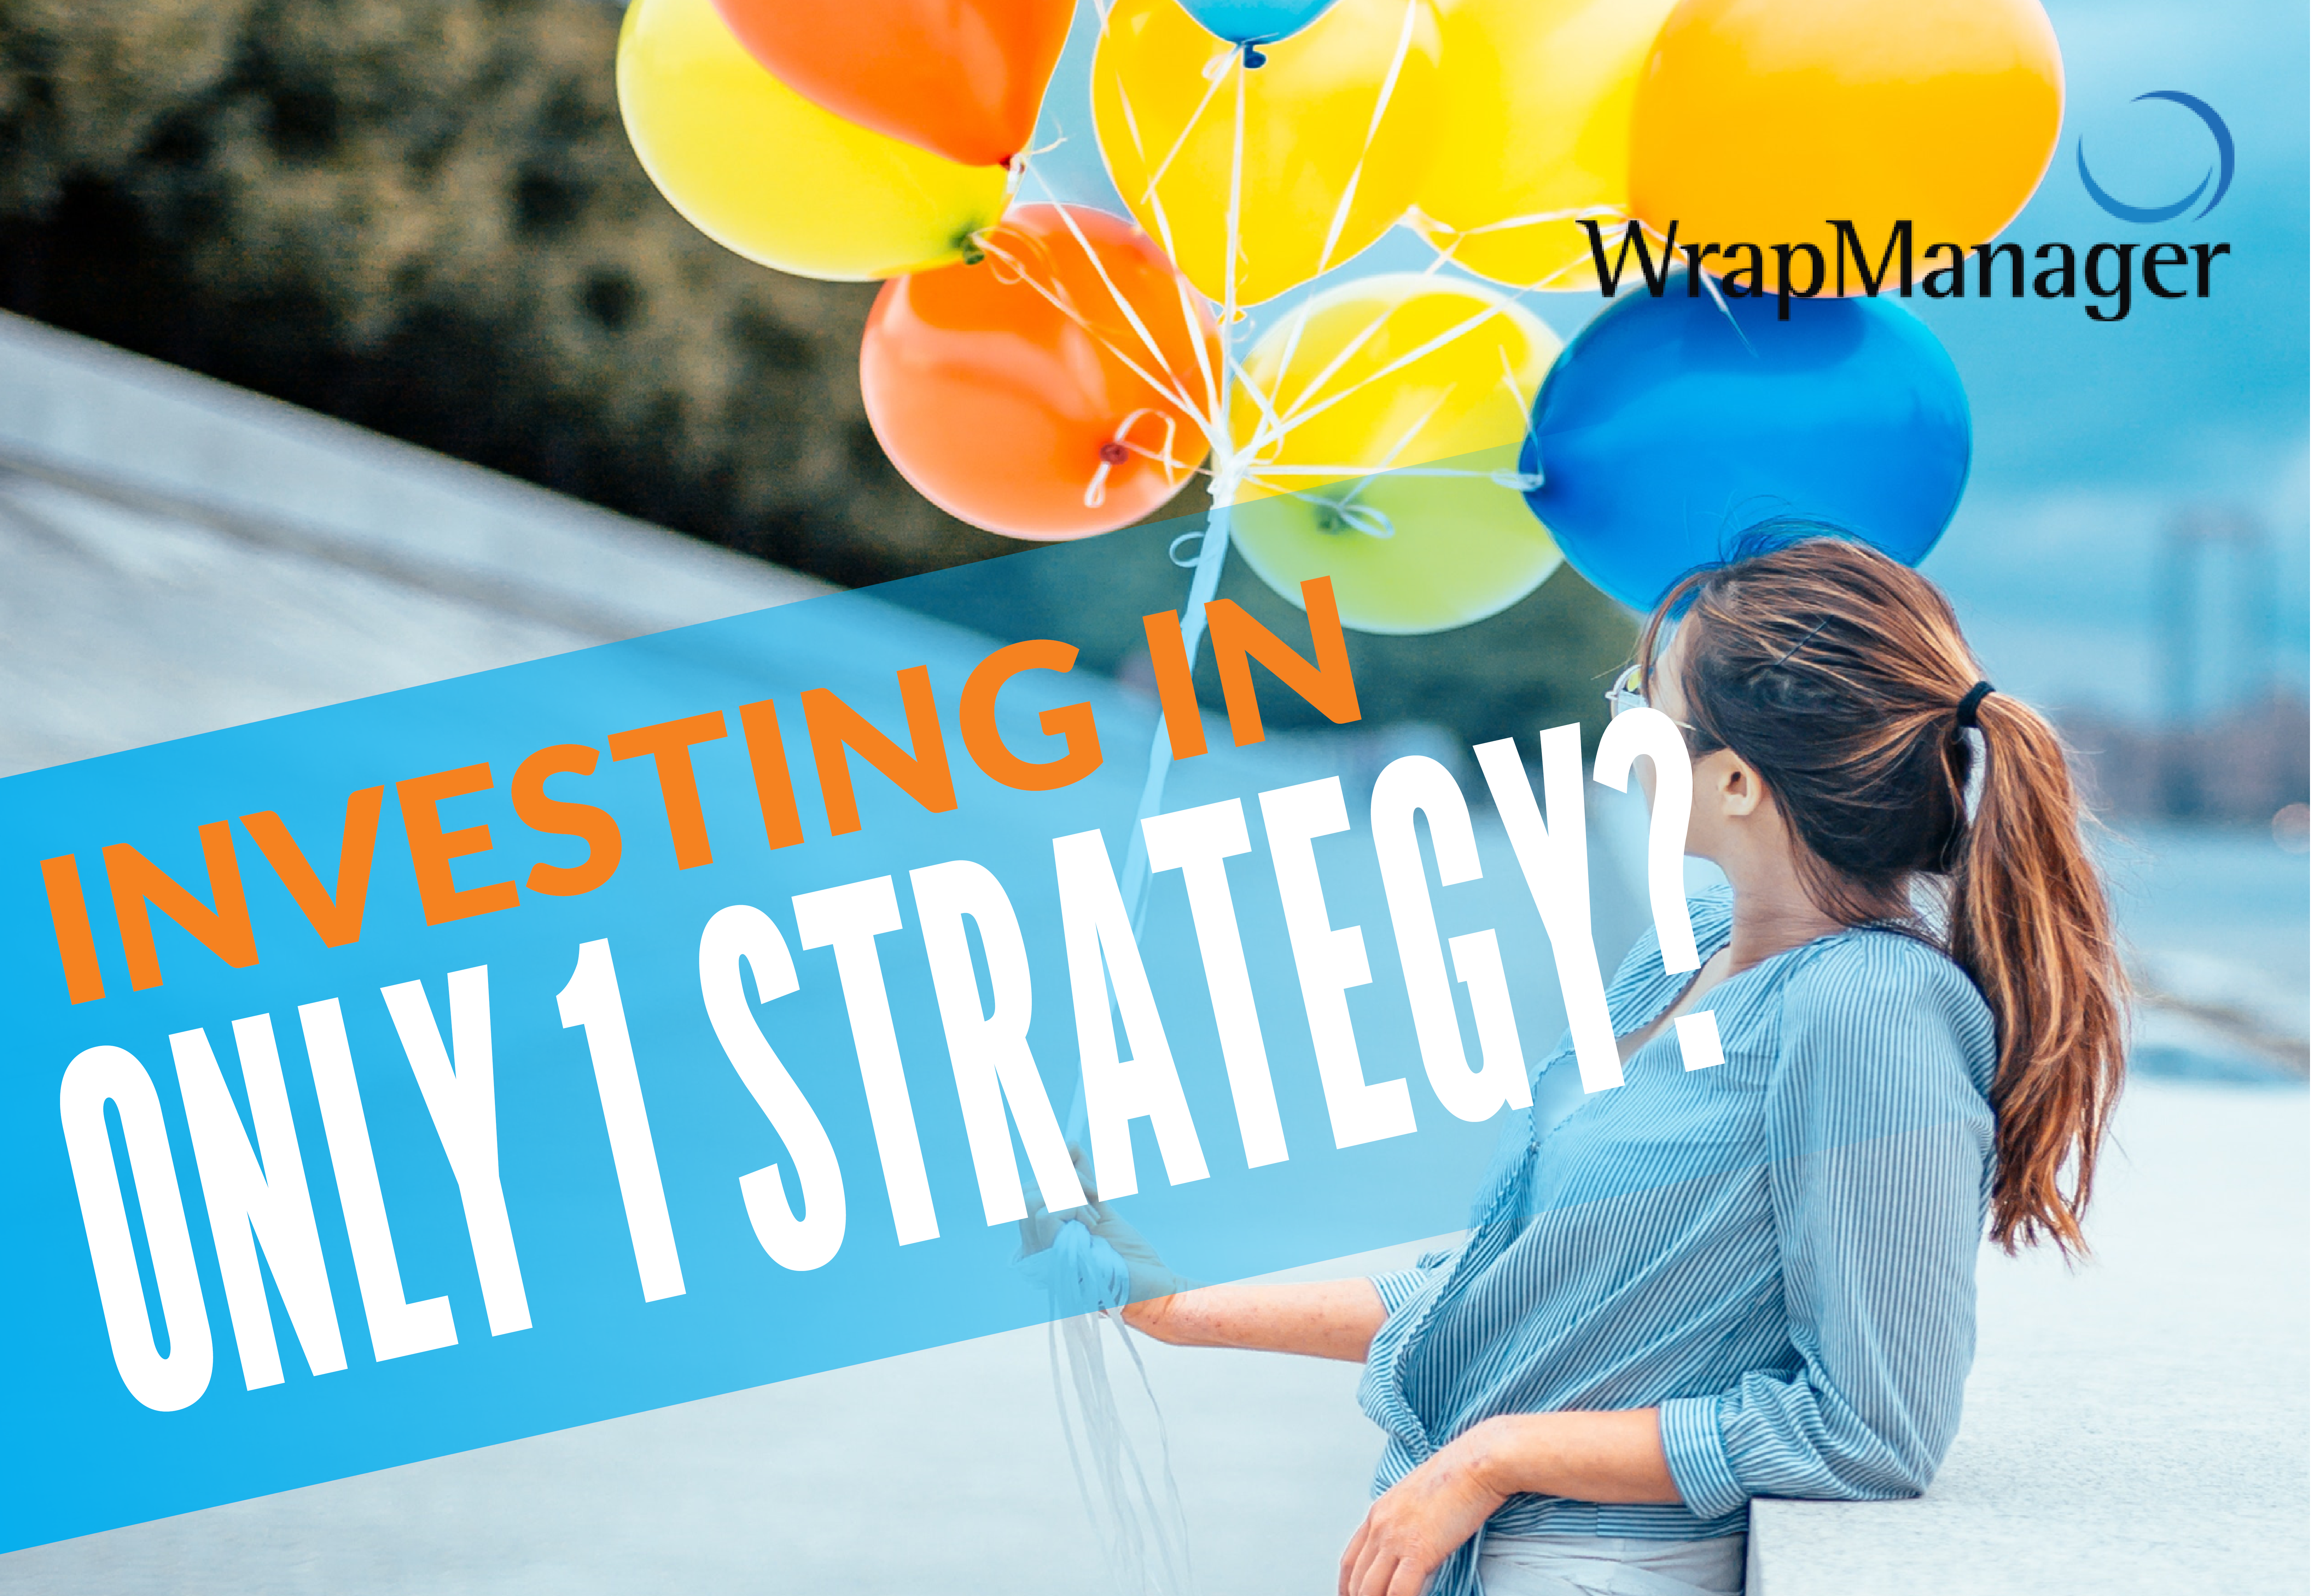 Should You Invest Your Entire Investment Portfolio in a Single Management Strategy?